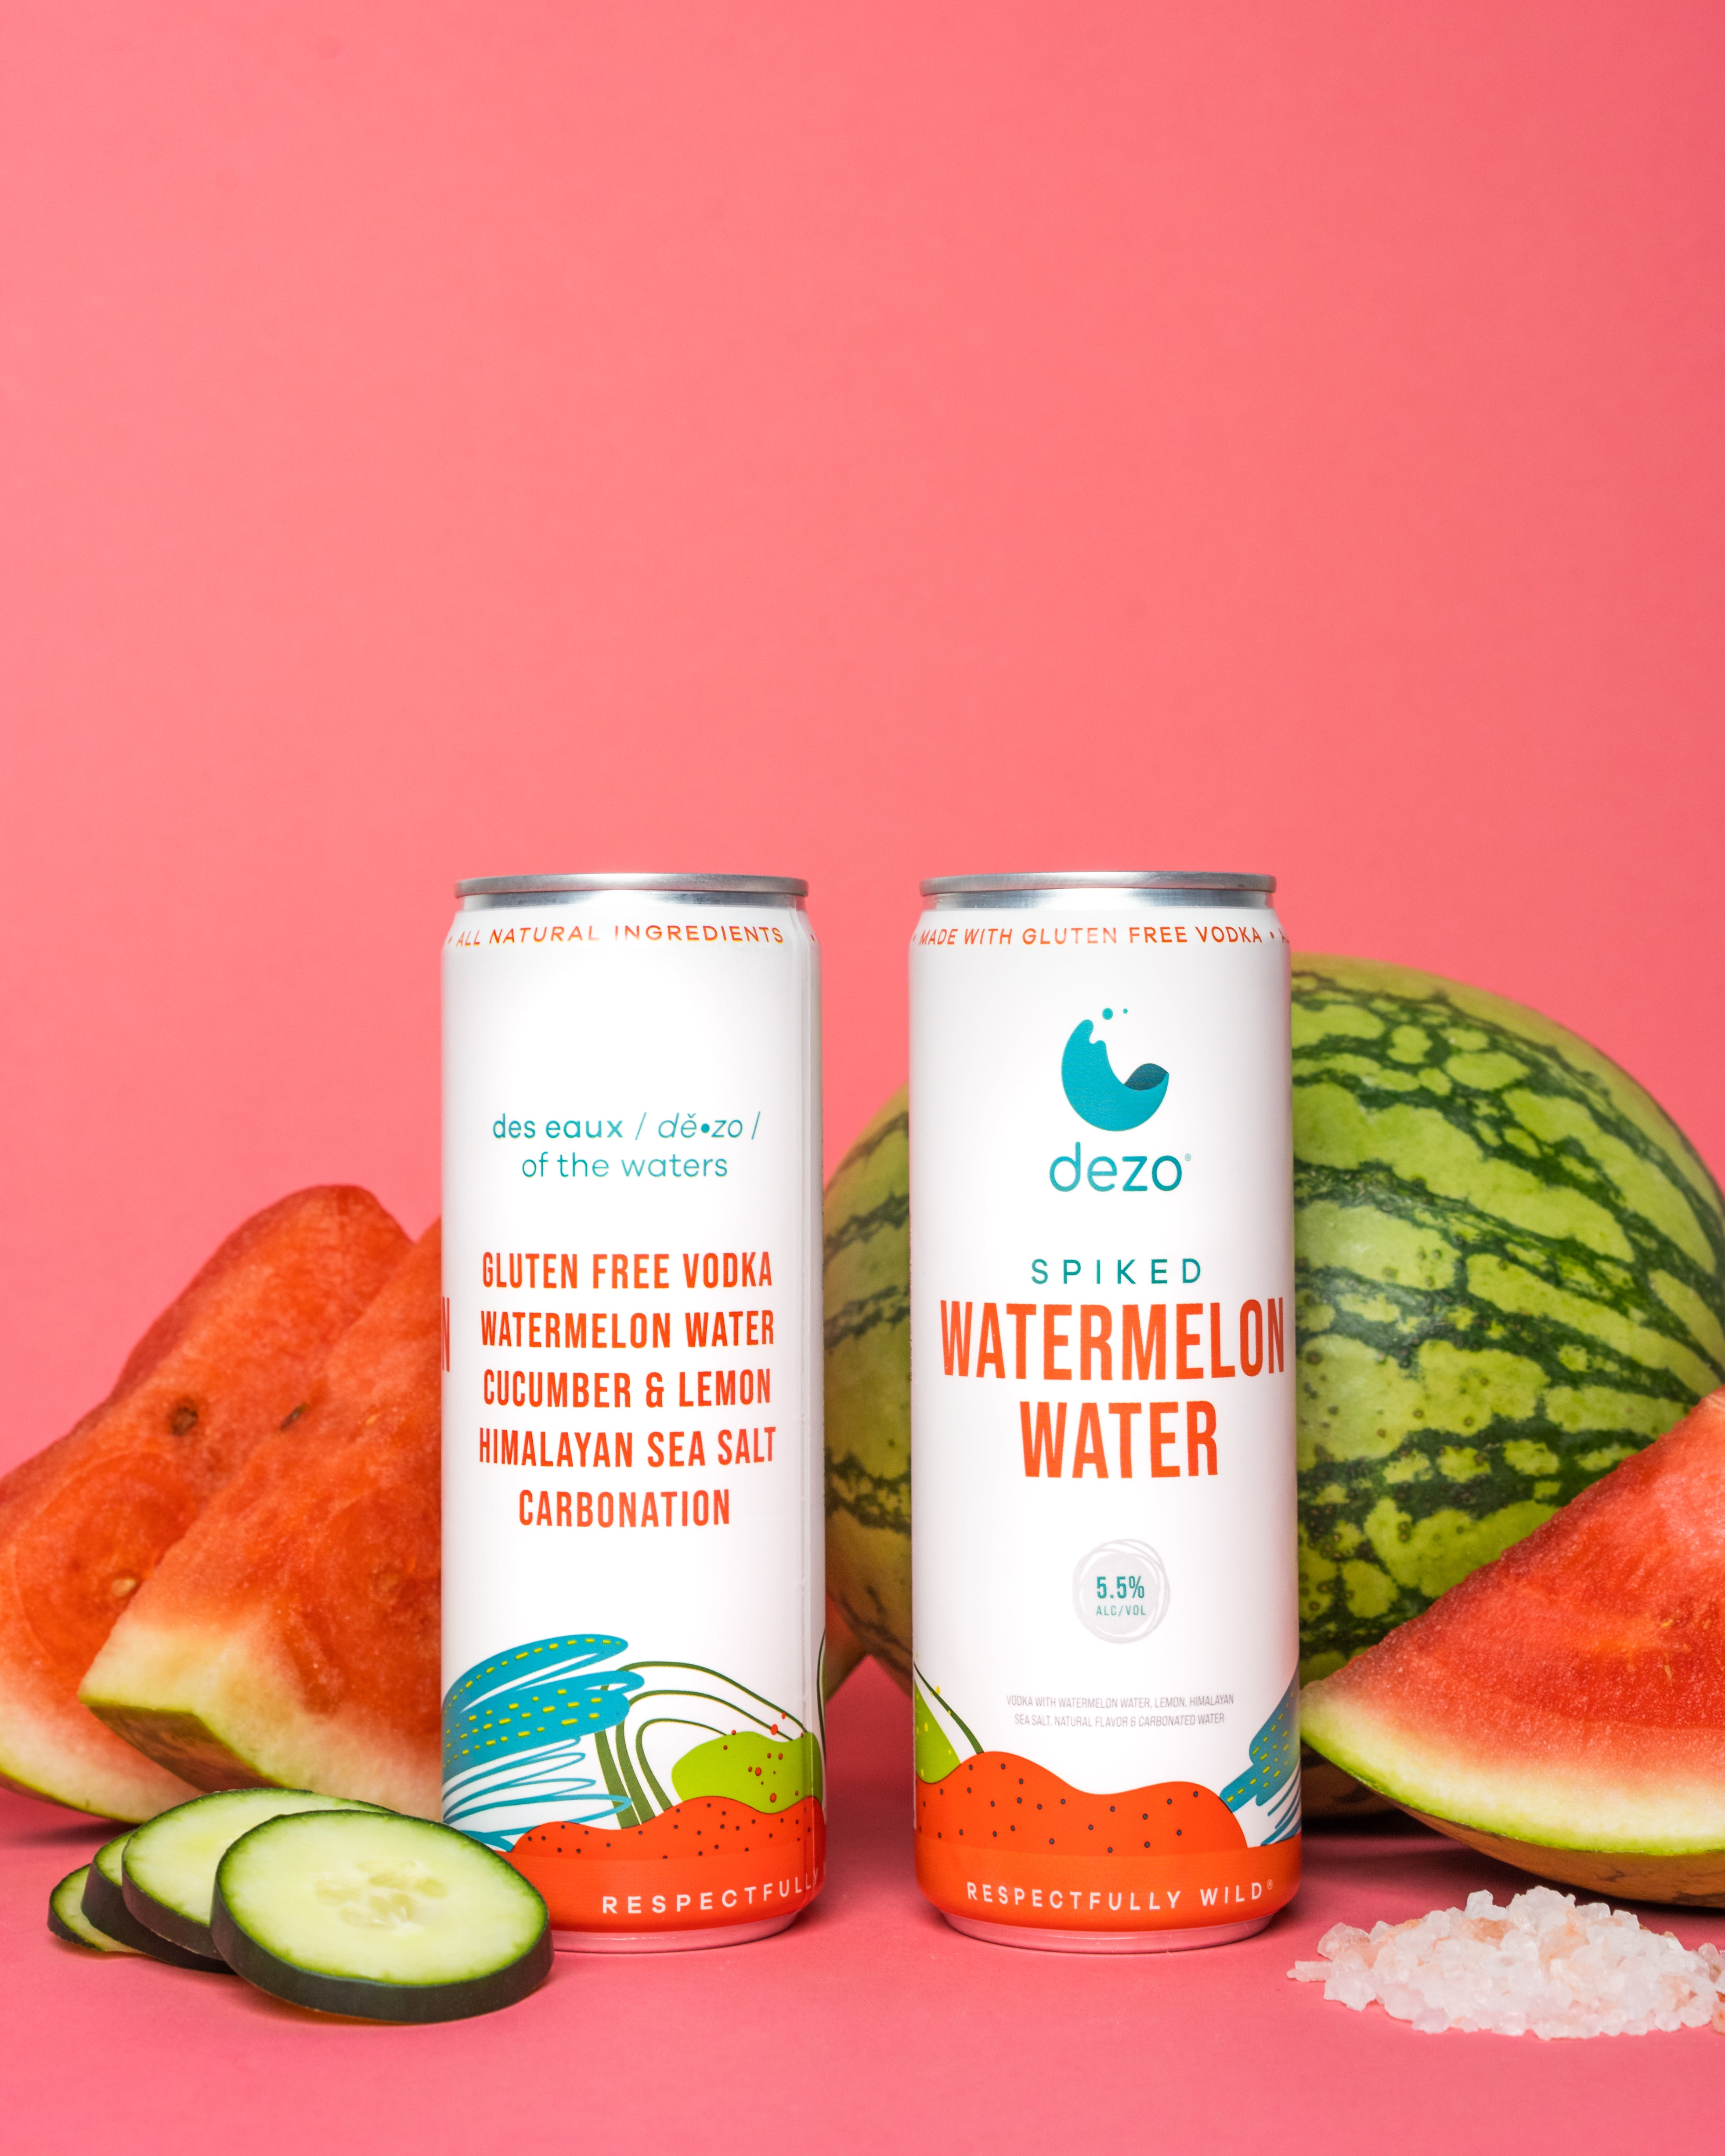 Spiked Watermelon Water